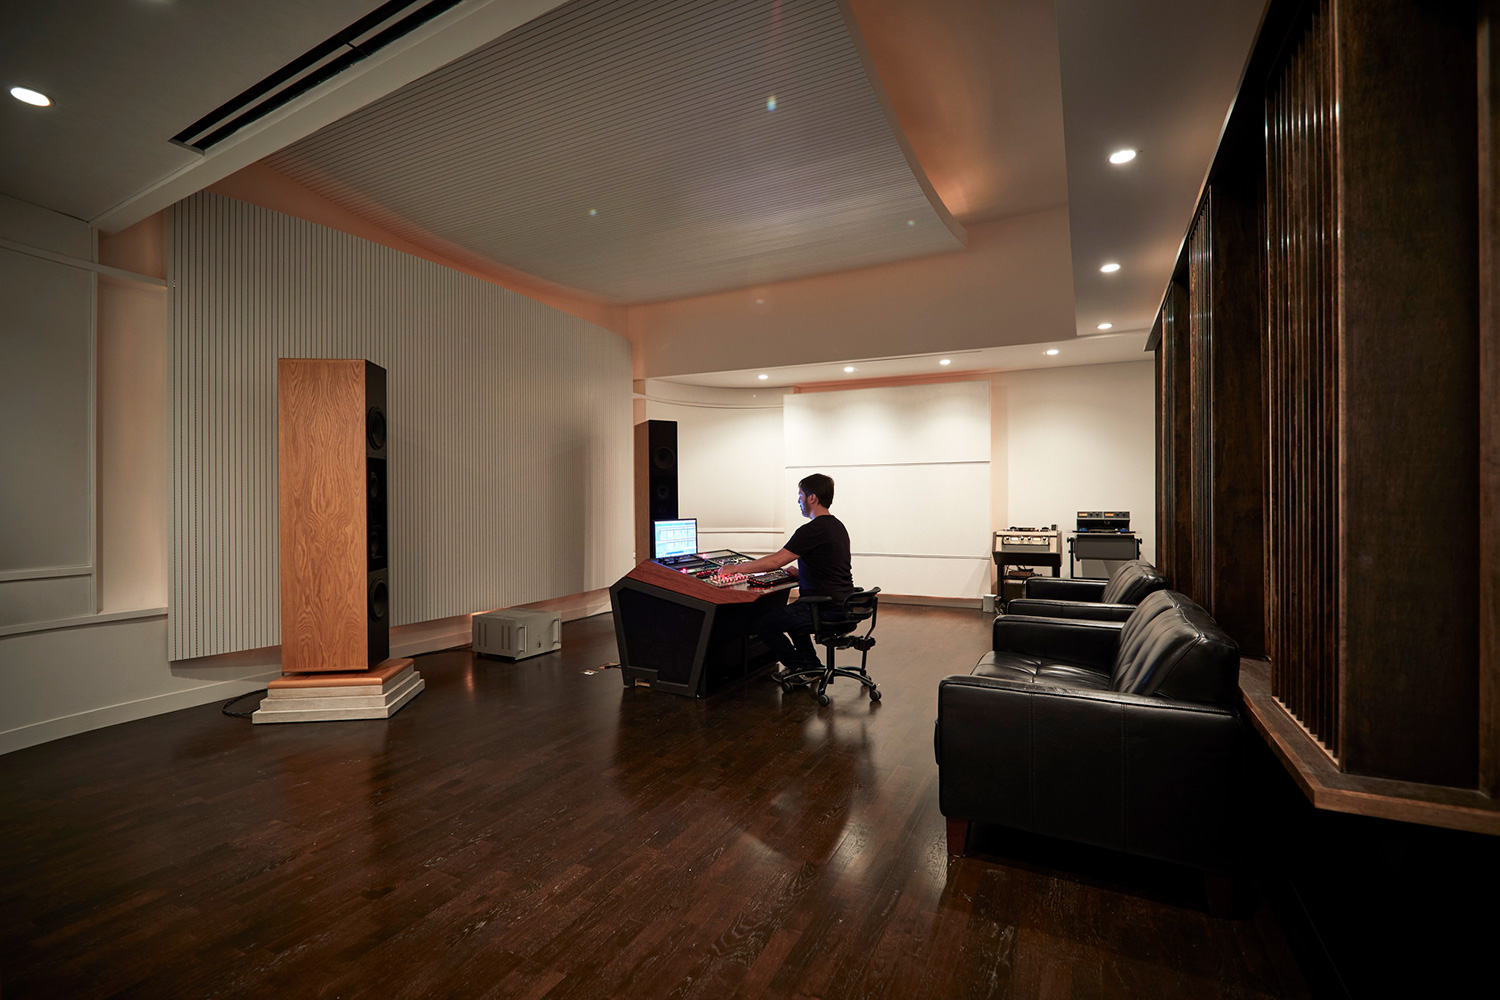 Top mastering engineer and Boiler Room founder Collin Jordan inquired WSDG to fully design his new mastering room in Chicago. WSDG's balance of technical acoustics and artistic design was spot on and made it easy to make the decision. Mastering room side view.